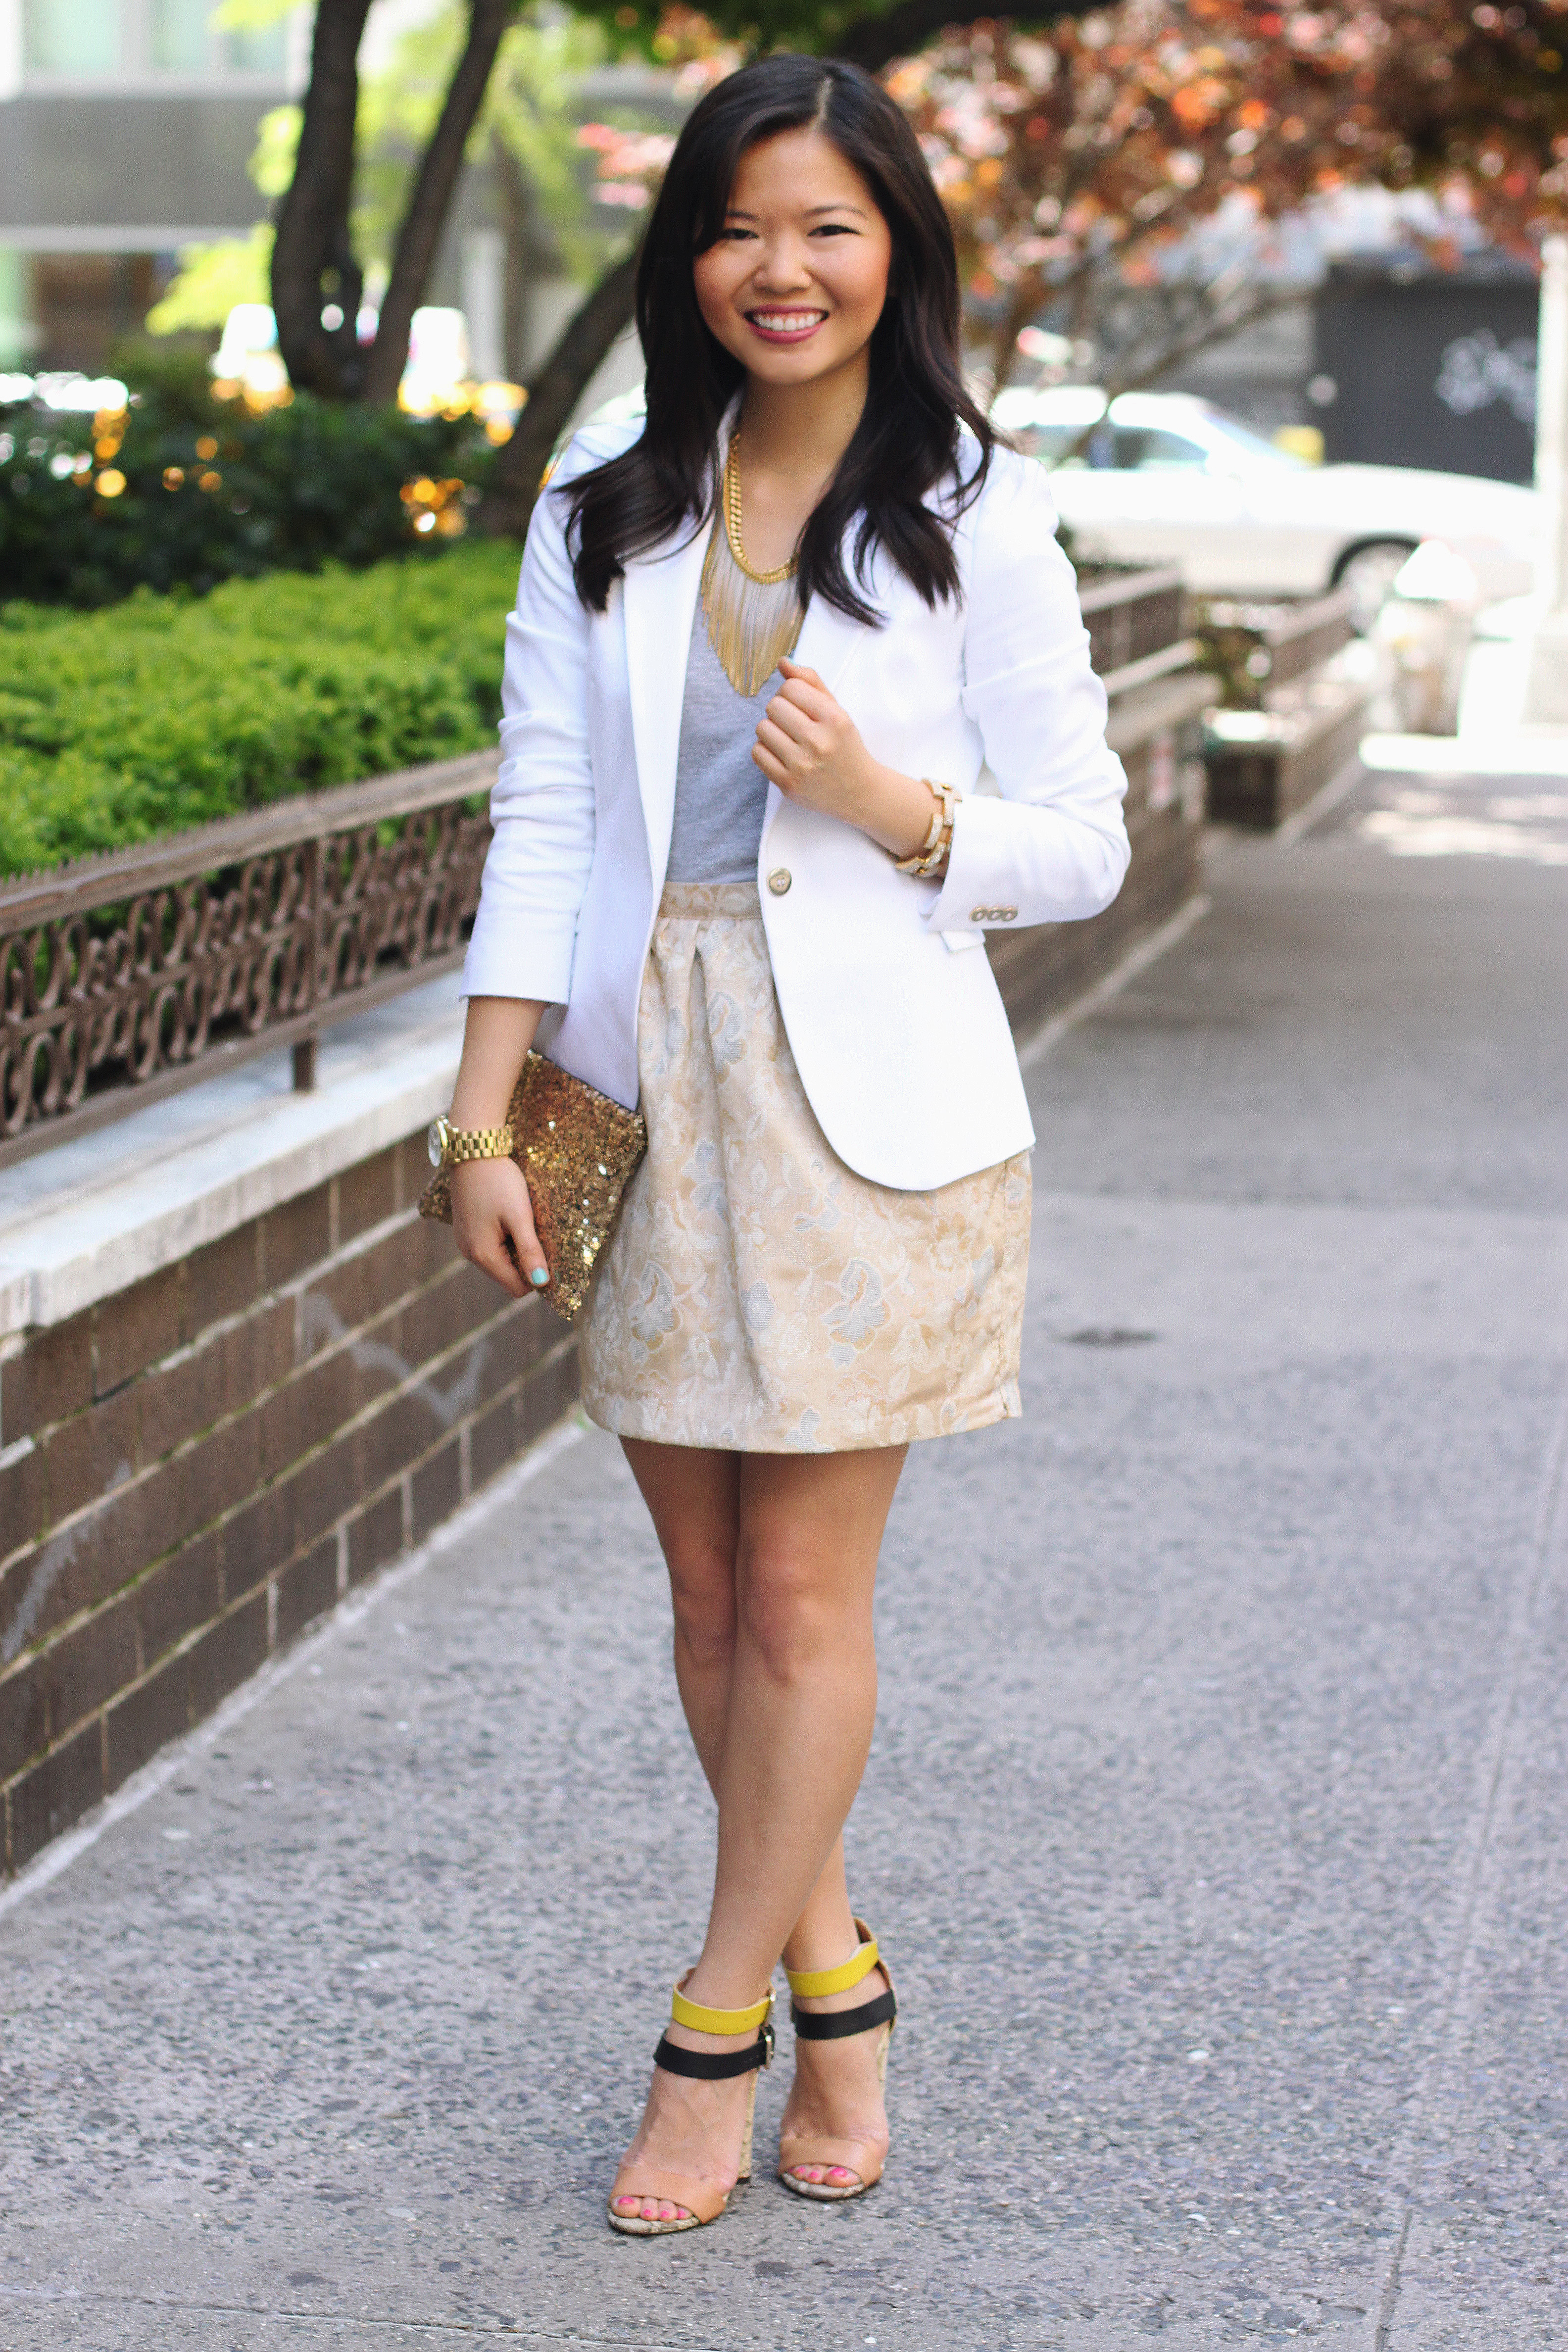 Skirt The Rules Blog; NYC fashion blogger; style blog; spring outfit photos; Zara white blazer with gold buttons; H&M gray v-neck t-shirt; Forever 21 gold gray floral skirt; Juicy Couture fringe necklace; Hello Fab gold glam clutch; J.Crew gold pave square link bracelet; Zara neon snakeskin heels with buckles; Michael Kors mother of pearl gold boyfriend watch